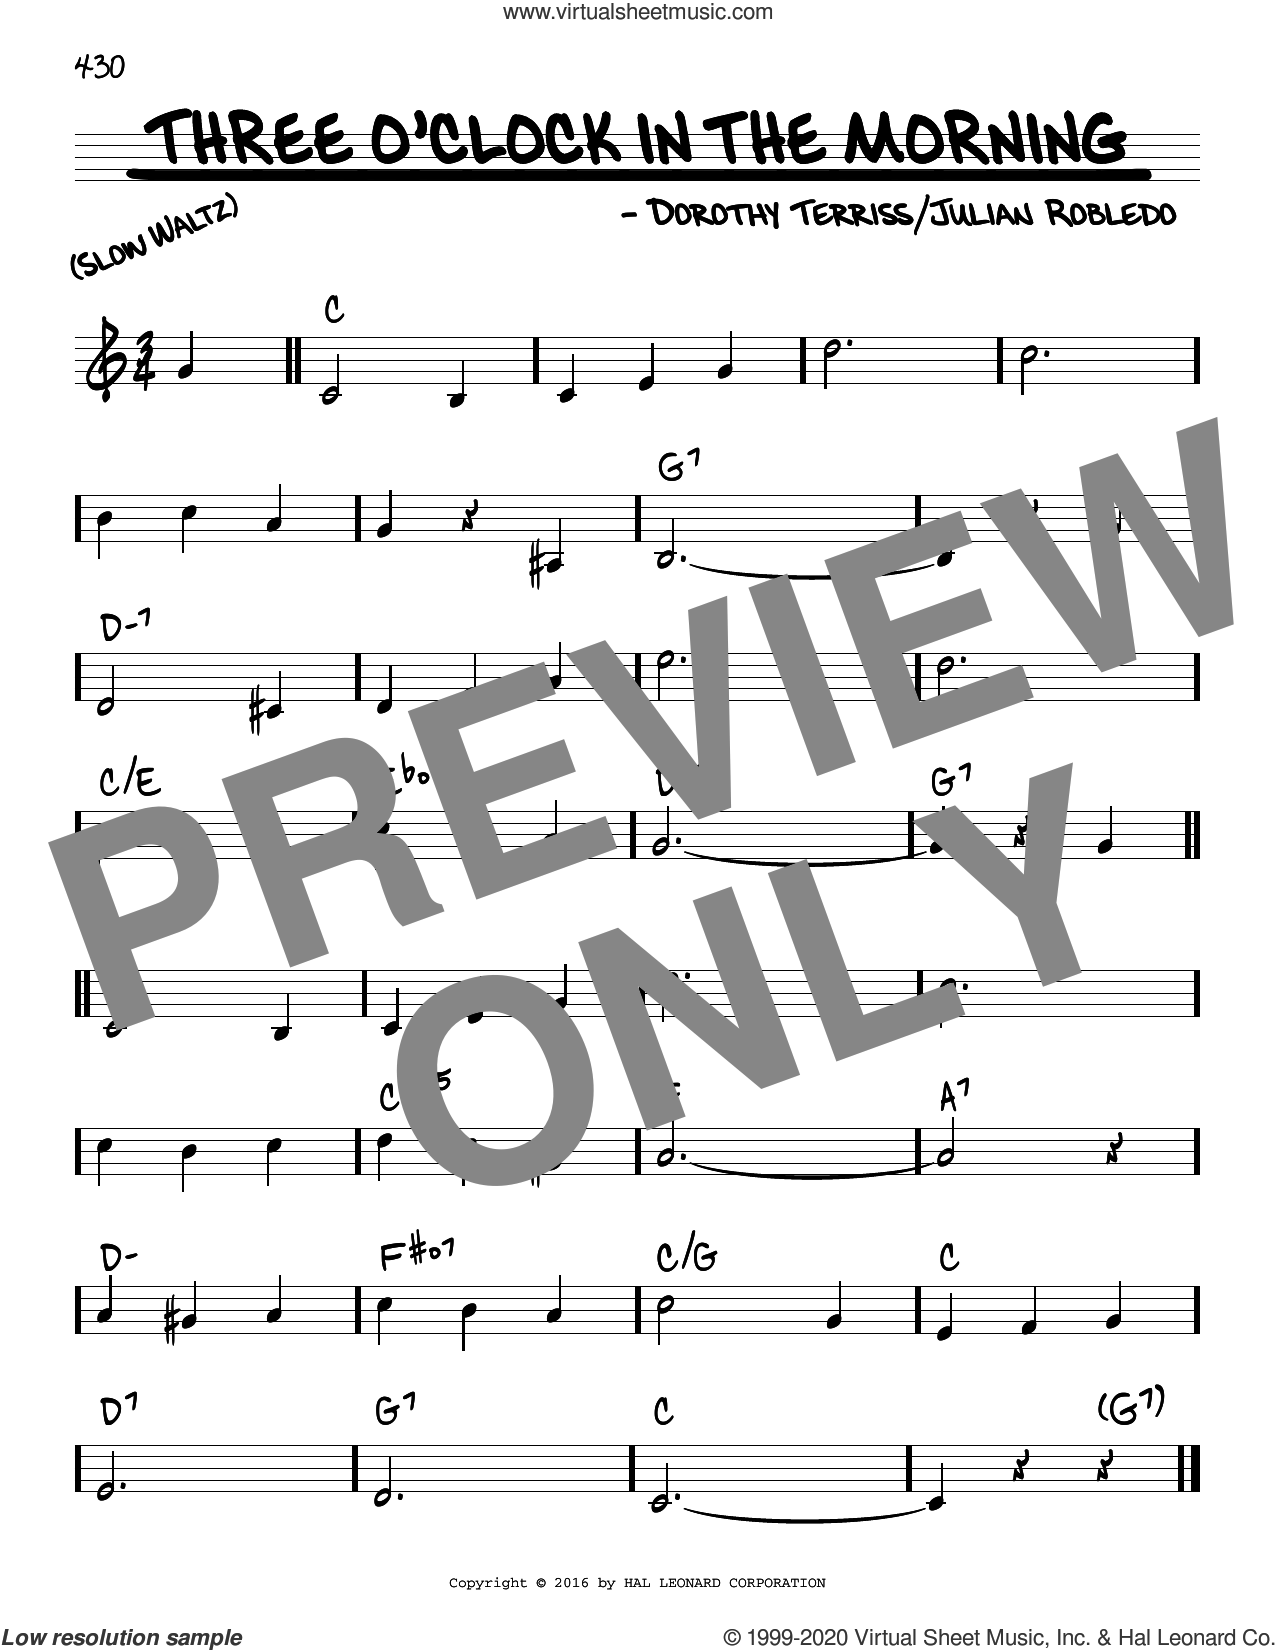 Three O'Clock In The Morning sheet music for voice and other instruments (real book) by Dorothy Terriss and Julian Robledo, intermediate skill level